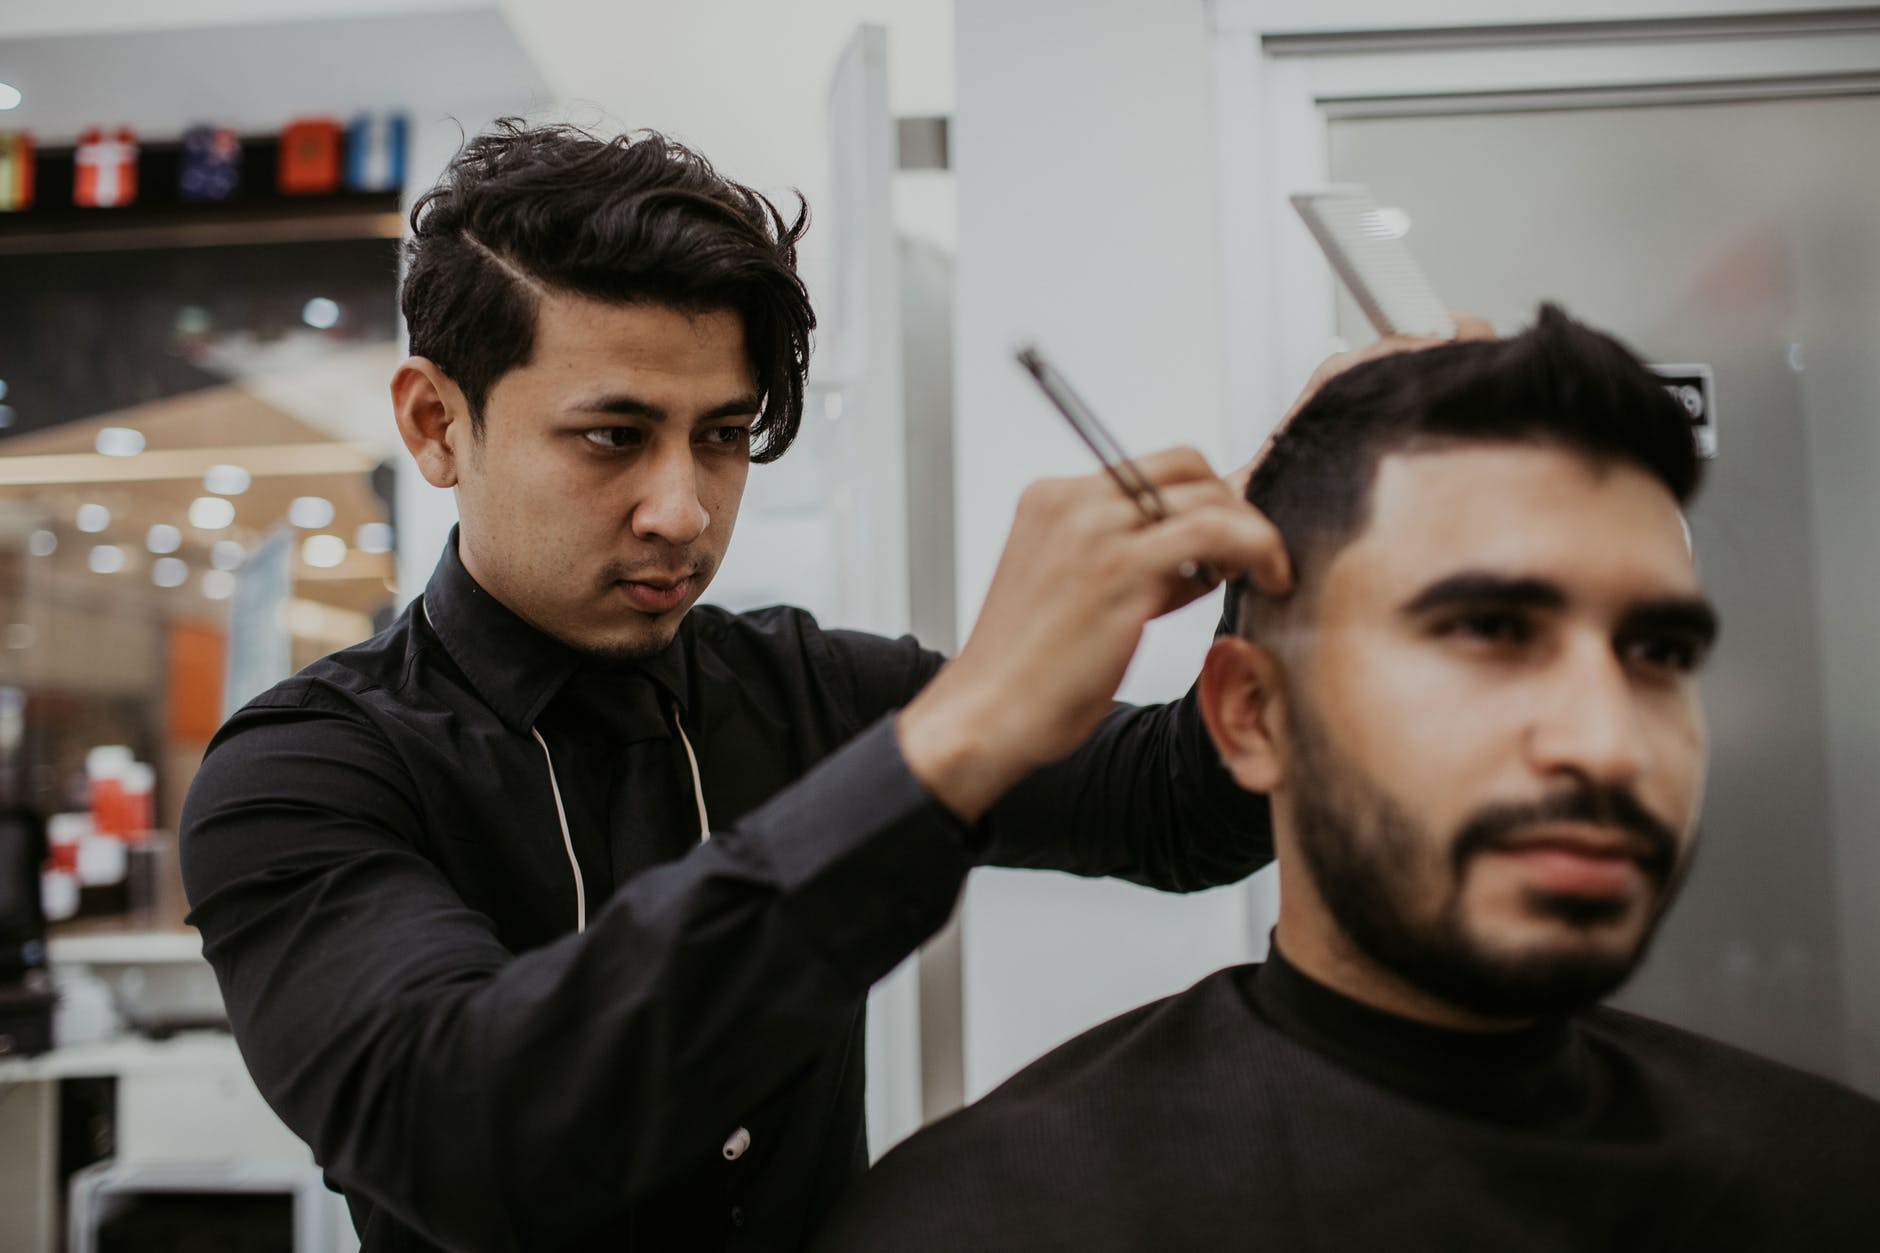 man cutting another man s hair